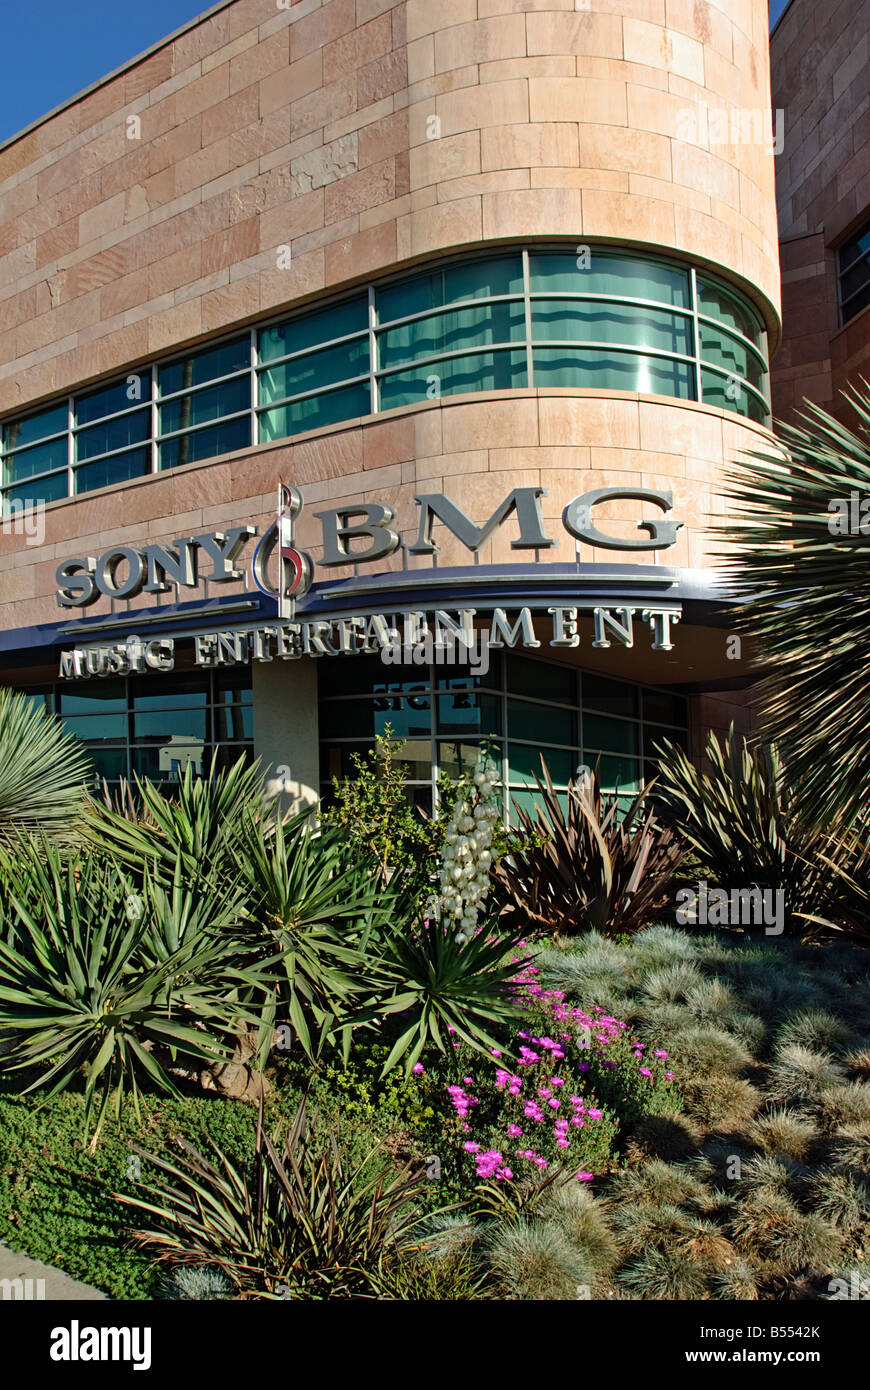 SONY BMG Music Entertainment Santa Monica CA California Stock Photo